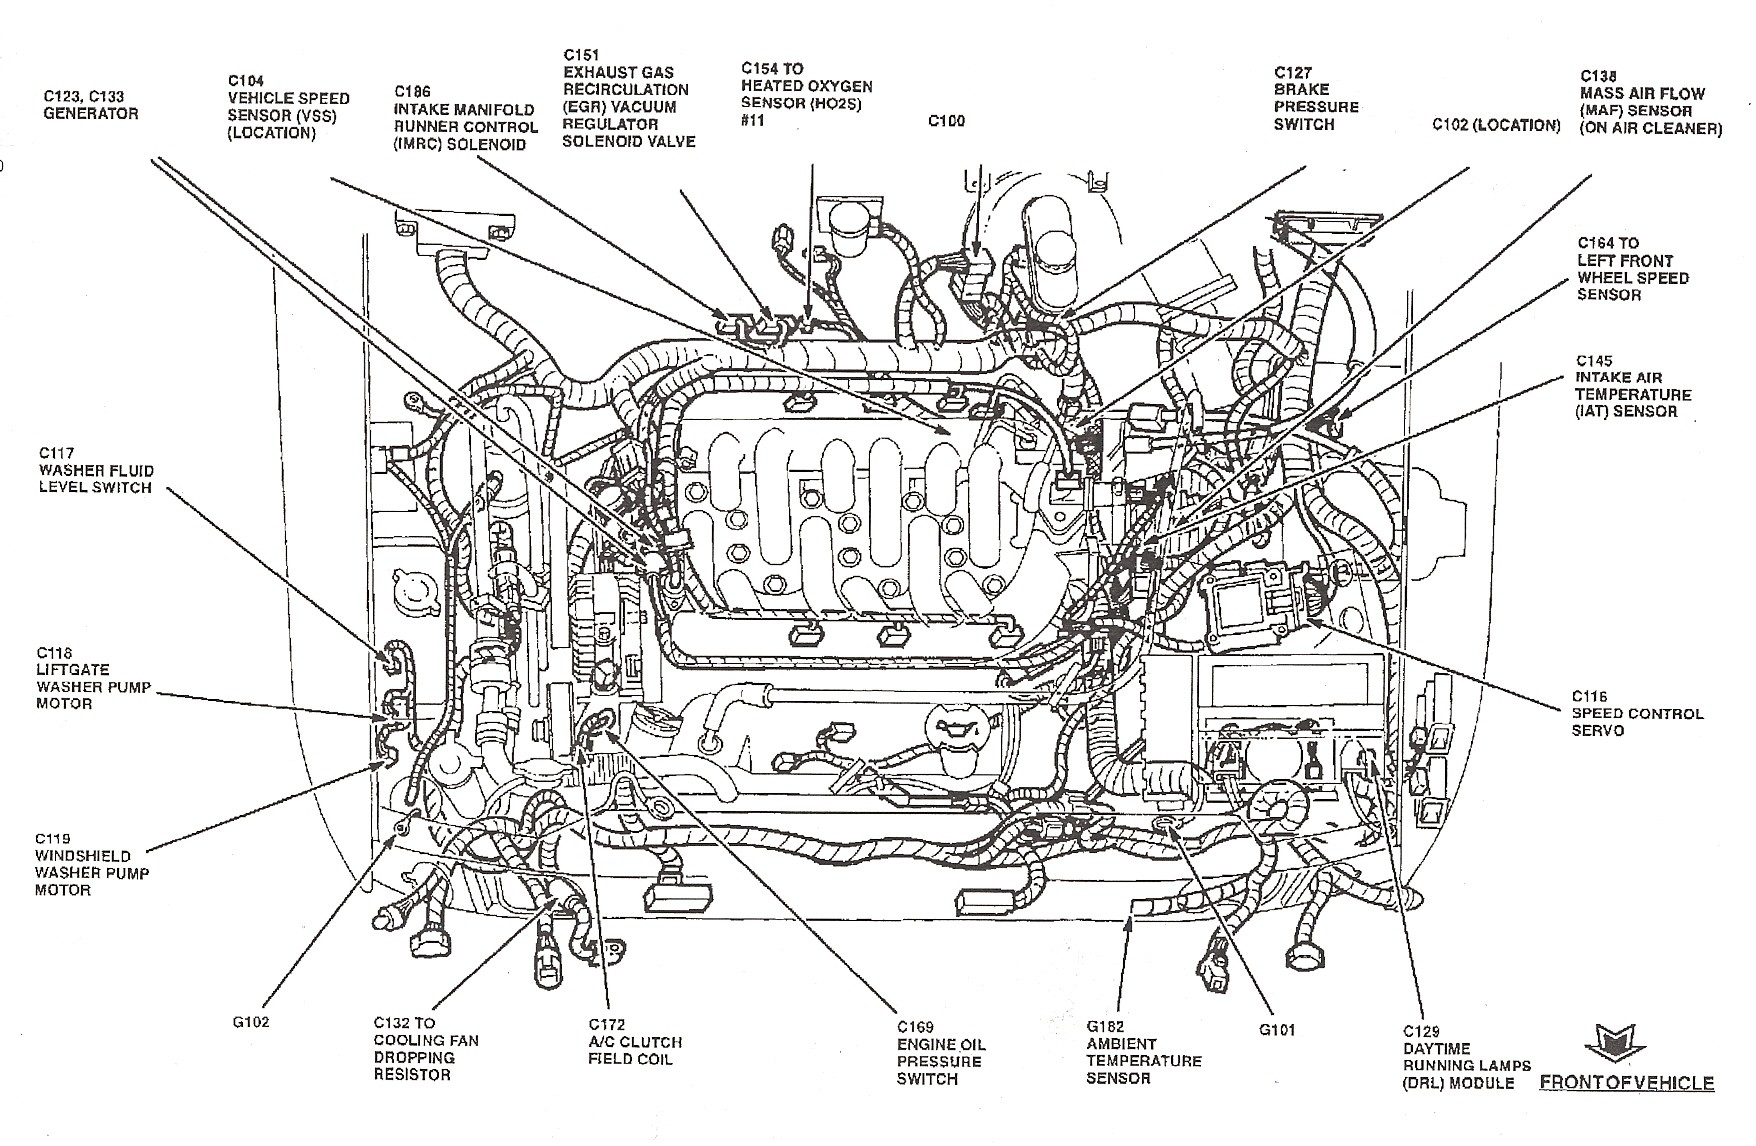 hight resolution of 2003 ford windstar fuel system diagram wiring diagram gpwrg 6242 2000 ford contour engine diagram